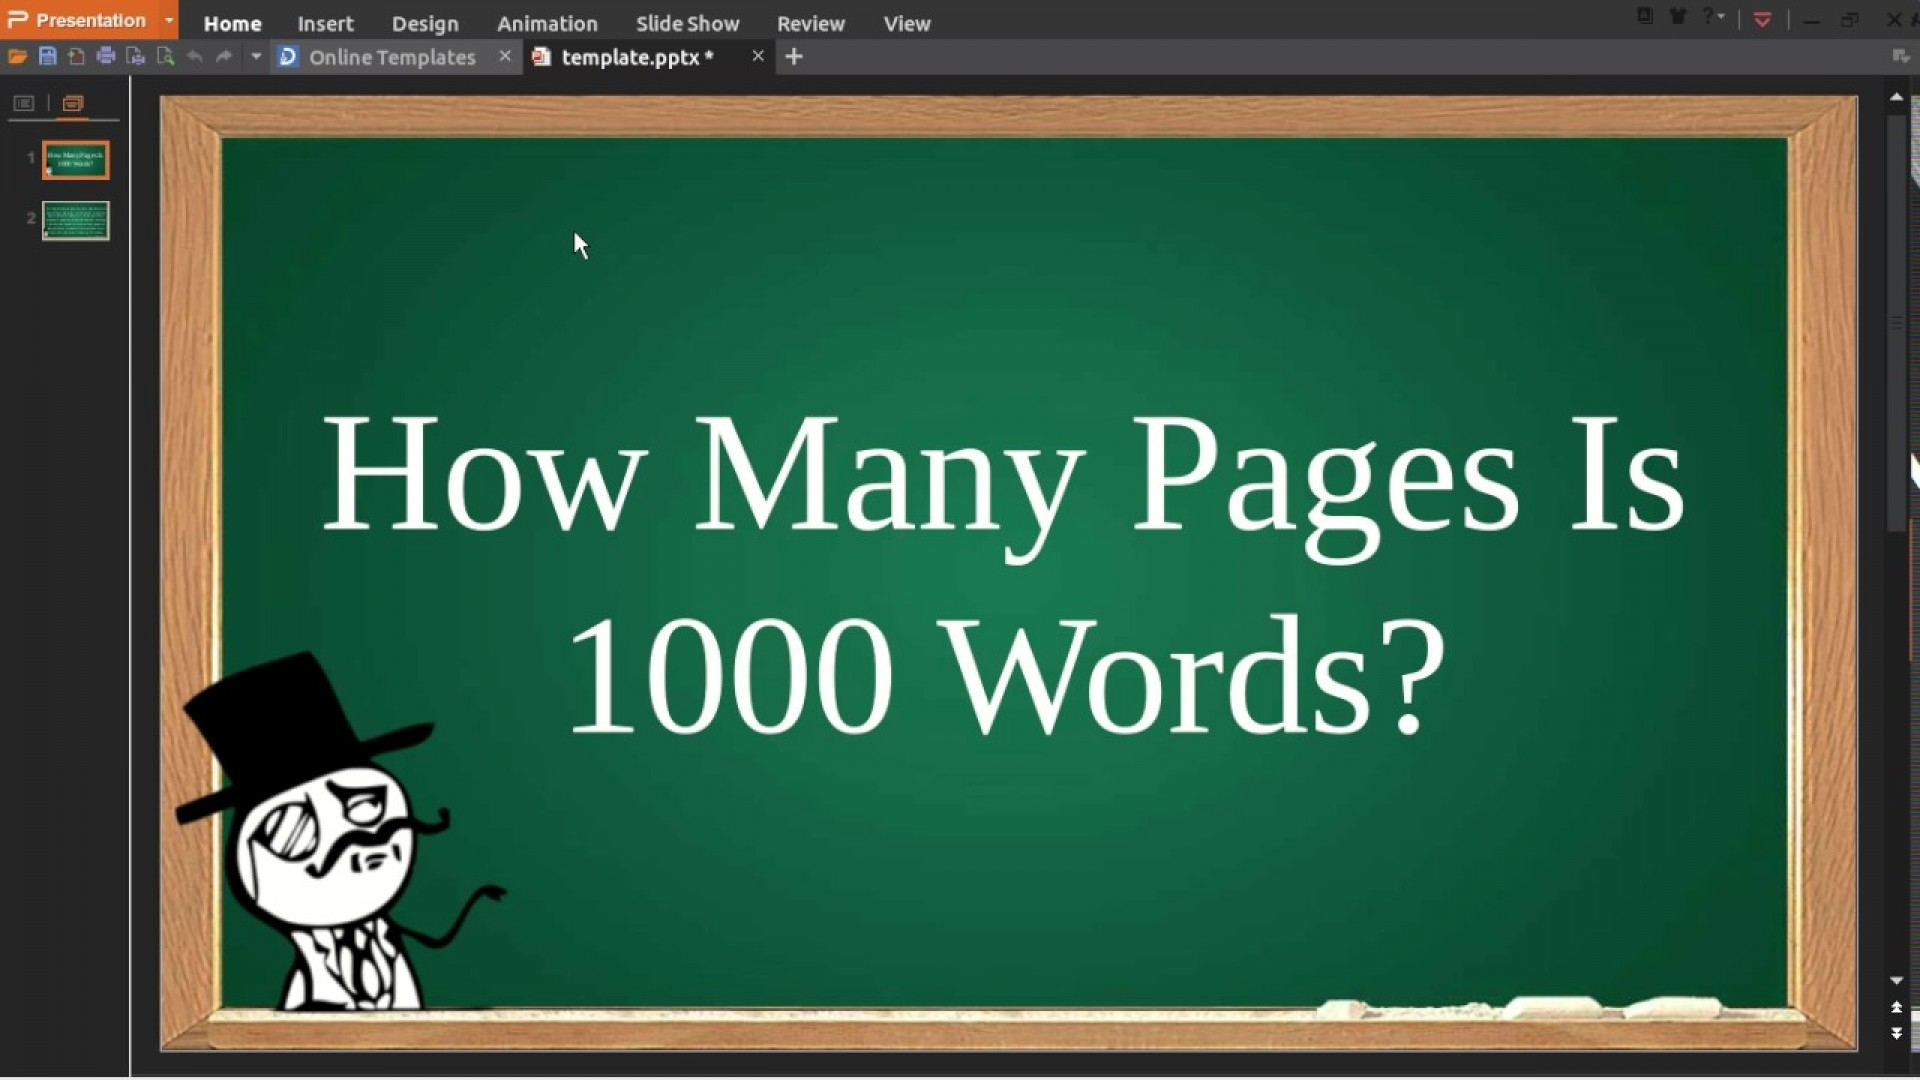 002 Maxresdefault Essay Example Word Fearsome Counter Accurate 1920